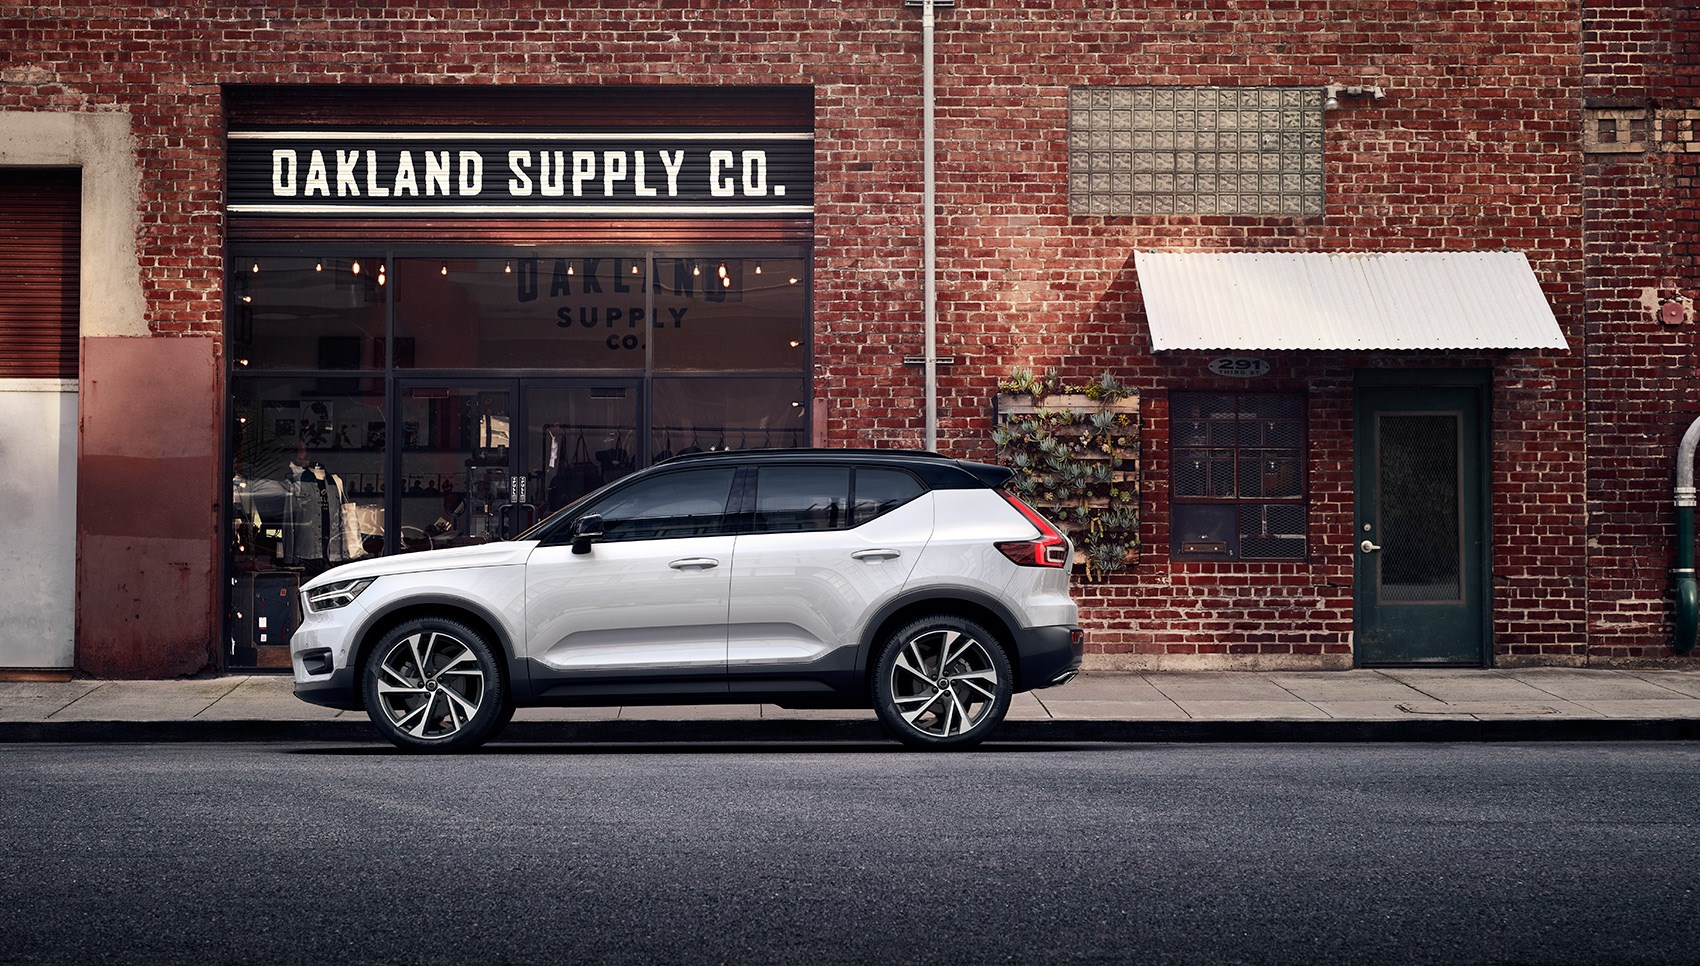 The new Volvo XC40 launch